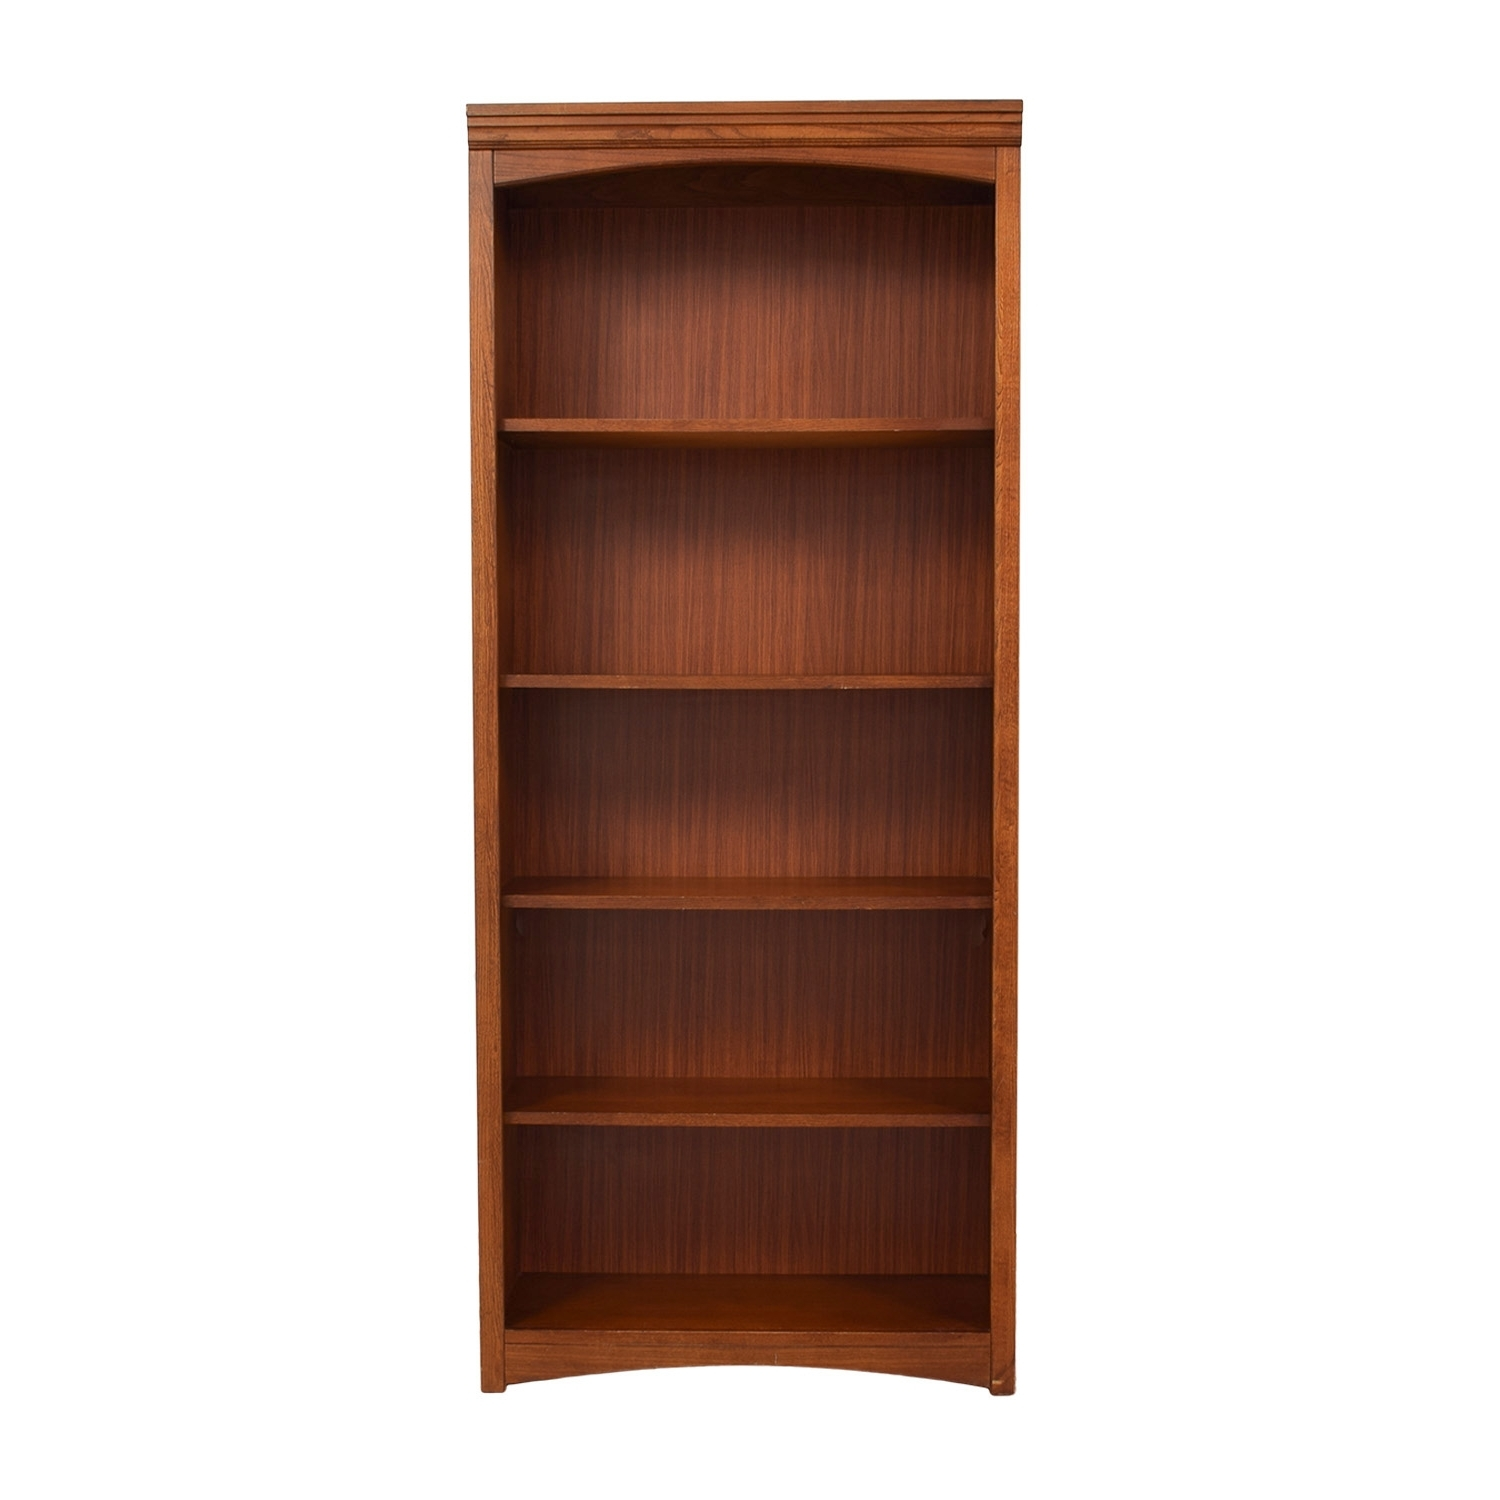 [%68% Off – Bassett Bassett Wooden Bookshelf / Storage Pertaining To Most Up To Date Wooden Bookcases|wooden Bookcases In 2018 68% Off – Bassett Bassett Wooden Bookshelf / Storage|well Known Wooden Bookcases With 68% Off – Bassett Bassett Wooden Bookshelf / Storage|most Current 68% Off – Bassett Bassett Wooden Bookshelf / Storage Throughout Wooden Bookcases%] (View 13 of 15)